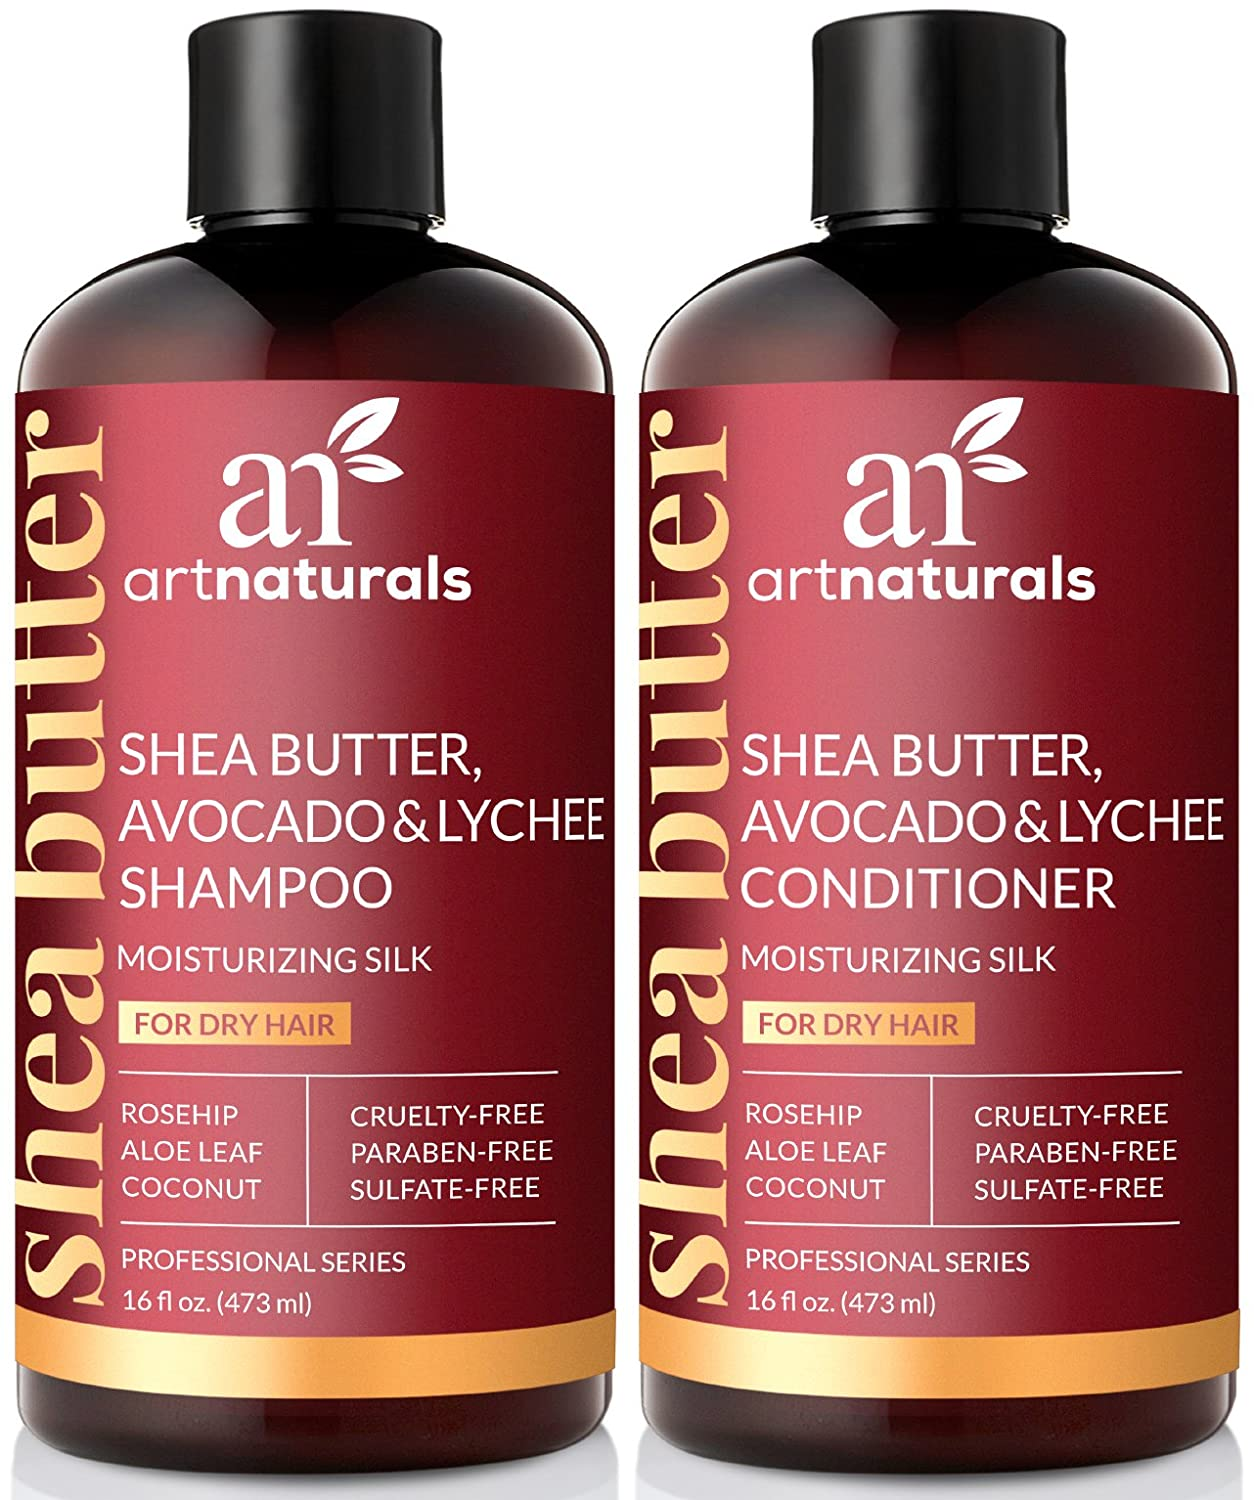 ArtNaturals Shea-Butter Shampoo and Conditioner Set - (2 x 473 ml) - Moisturizing Silk - For Dry Damaged Hair - Avocado, Lychee, Rosehip, Aloe Vera and Coconut - Sulfate-Free 0816820023927